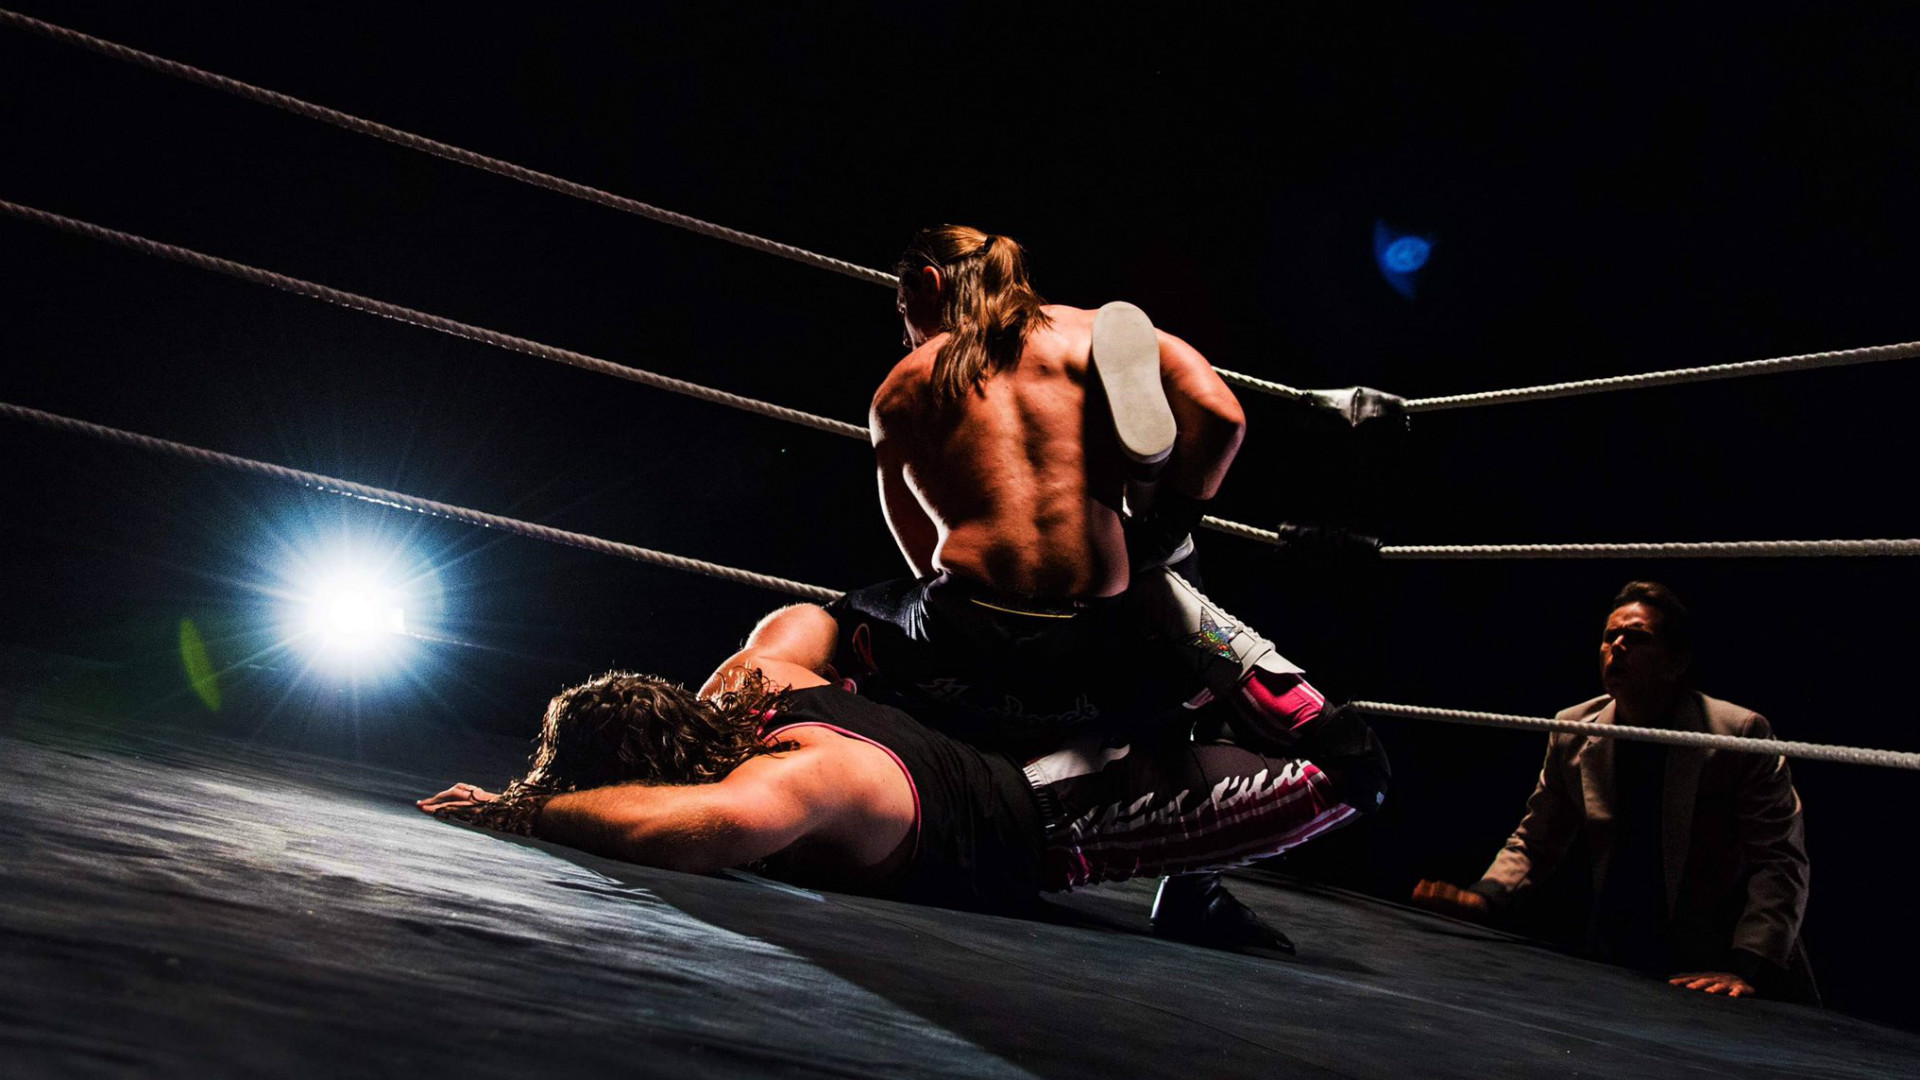 'Dark Side of the Ring' director talks feedback from The Rock, future plans for episodes on Chris Benoit and Dino Bravo and working around the WWE